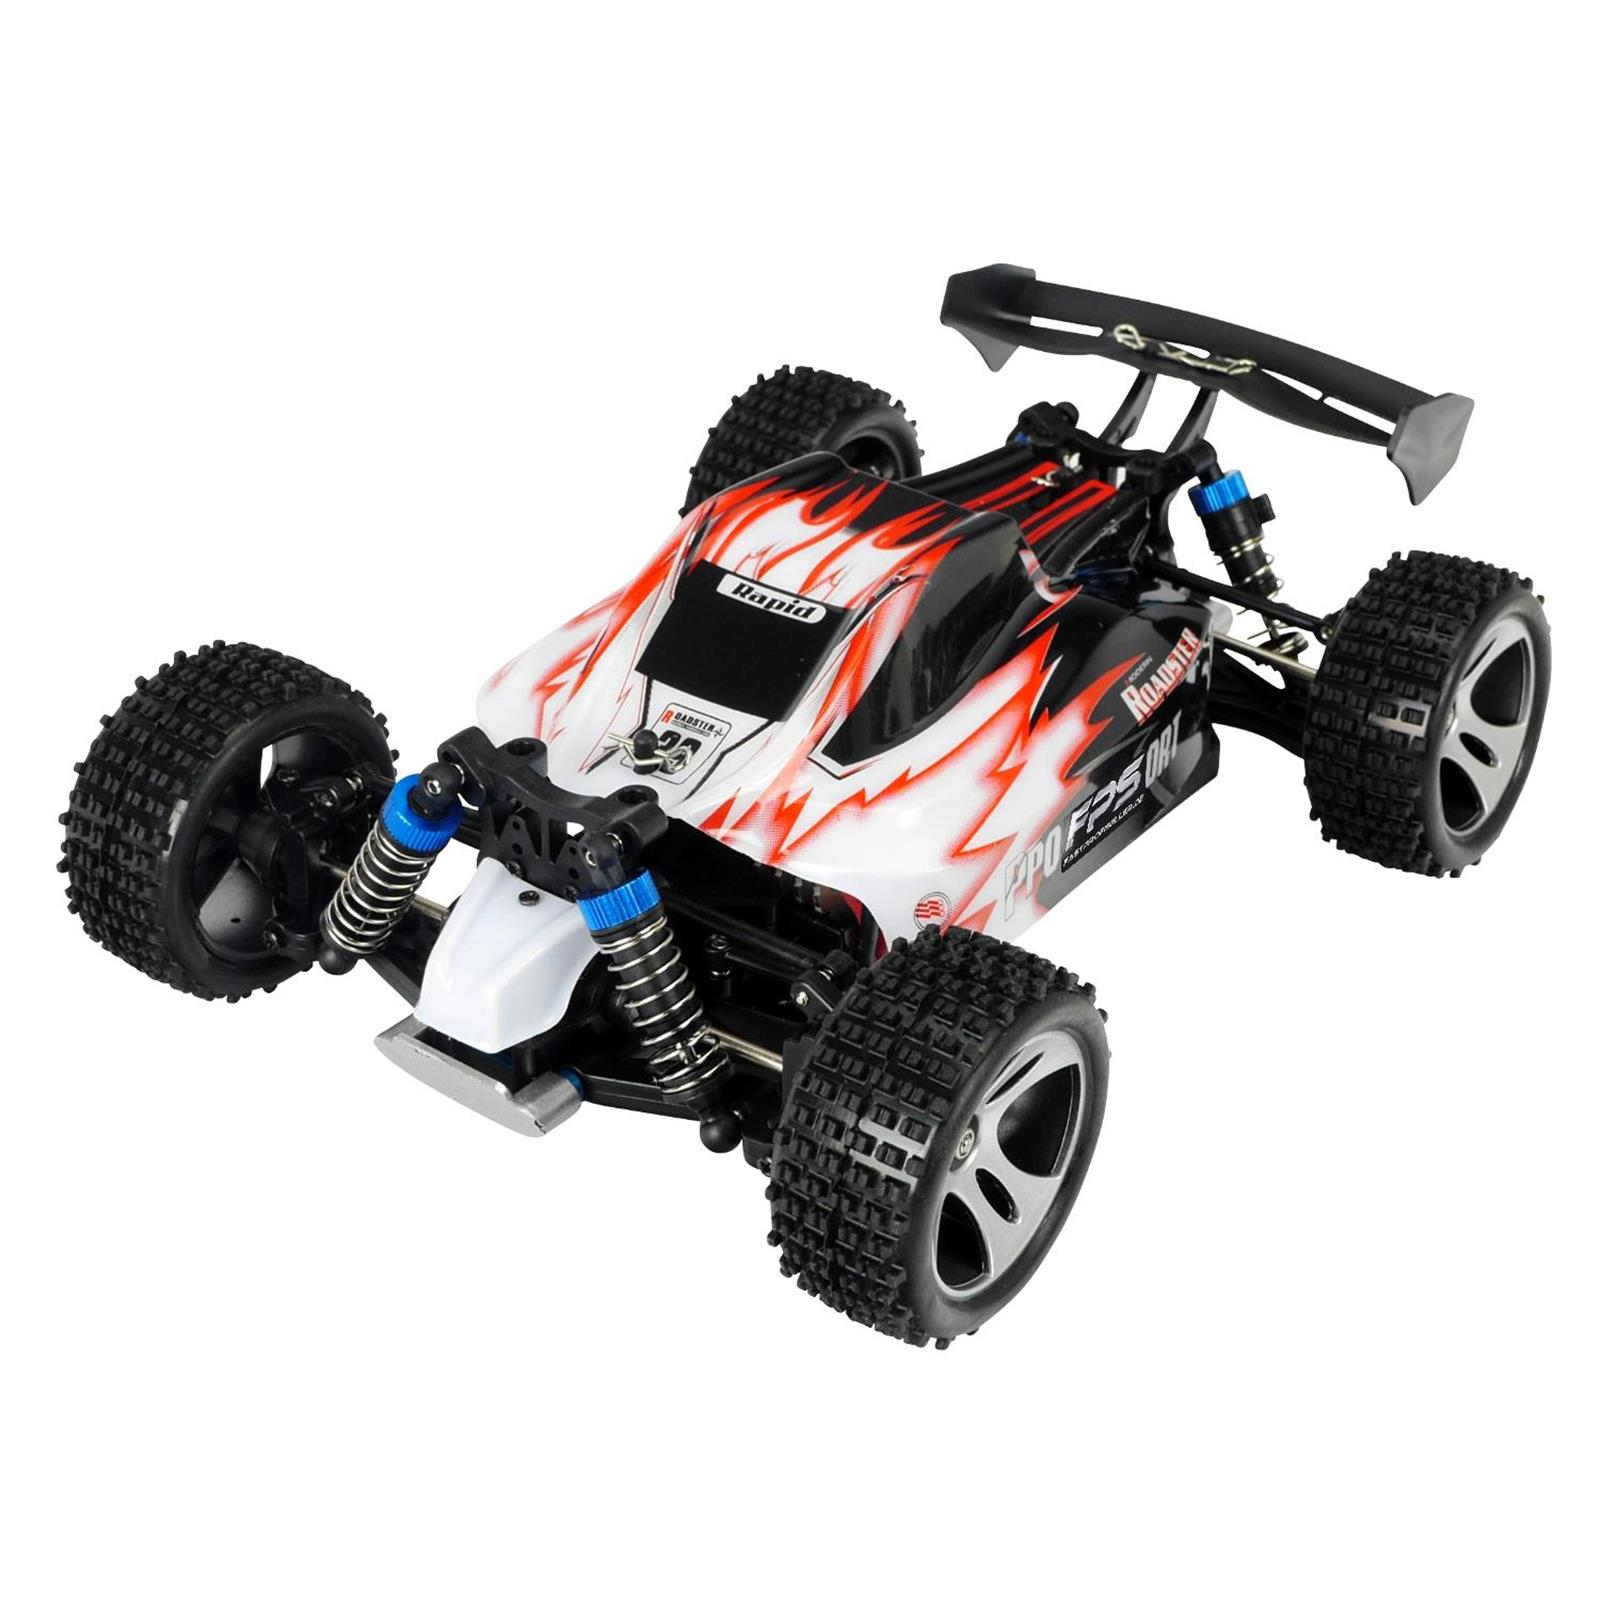 rc buggy 1 18 pro v2 50 km h elektro offroad auto 4wd. Black Bedroom Furniture Sets. Home Design Ideas